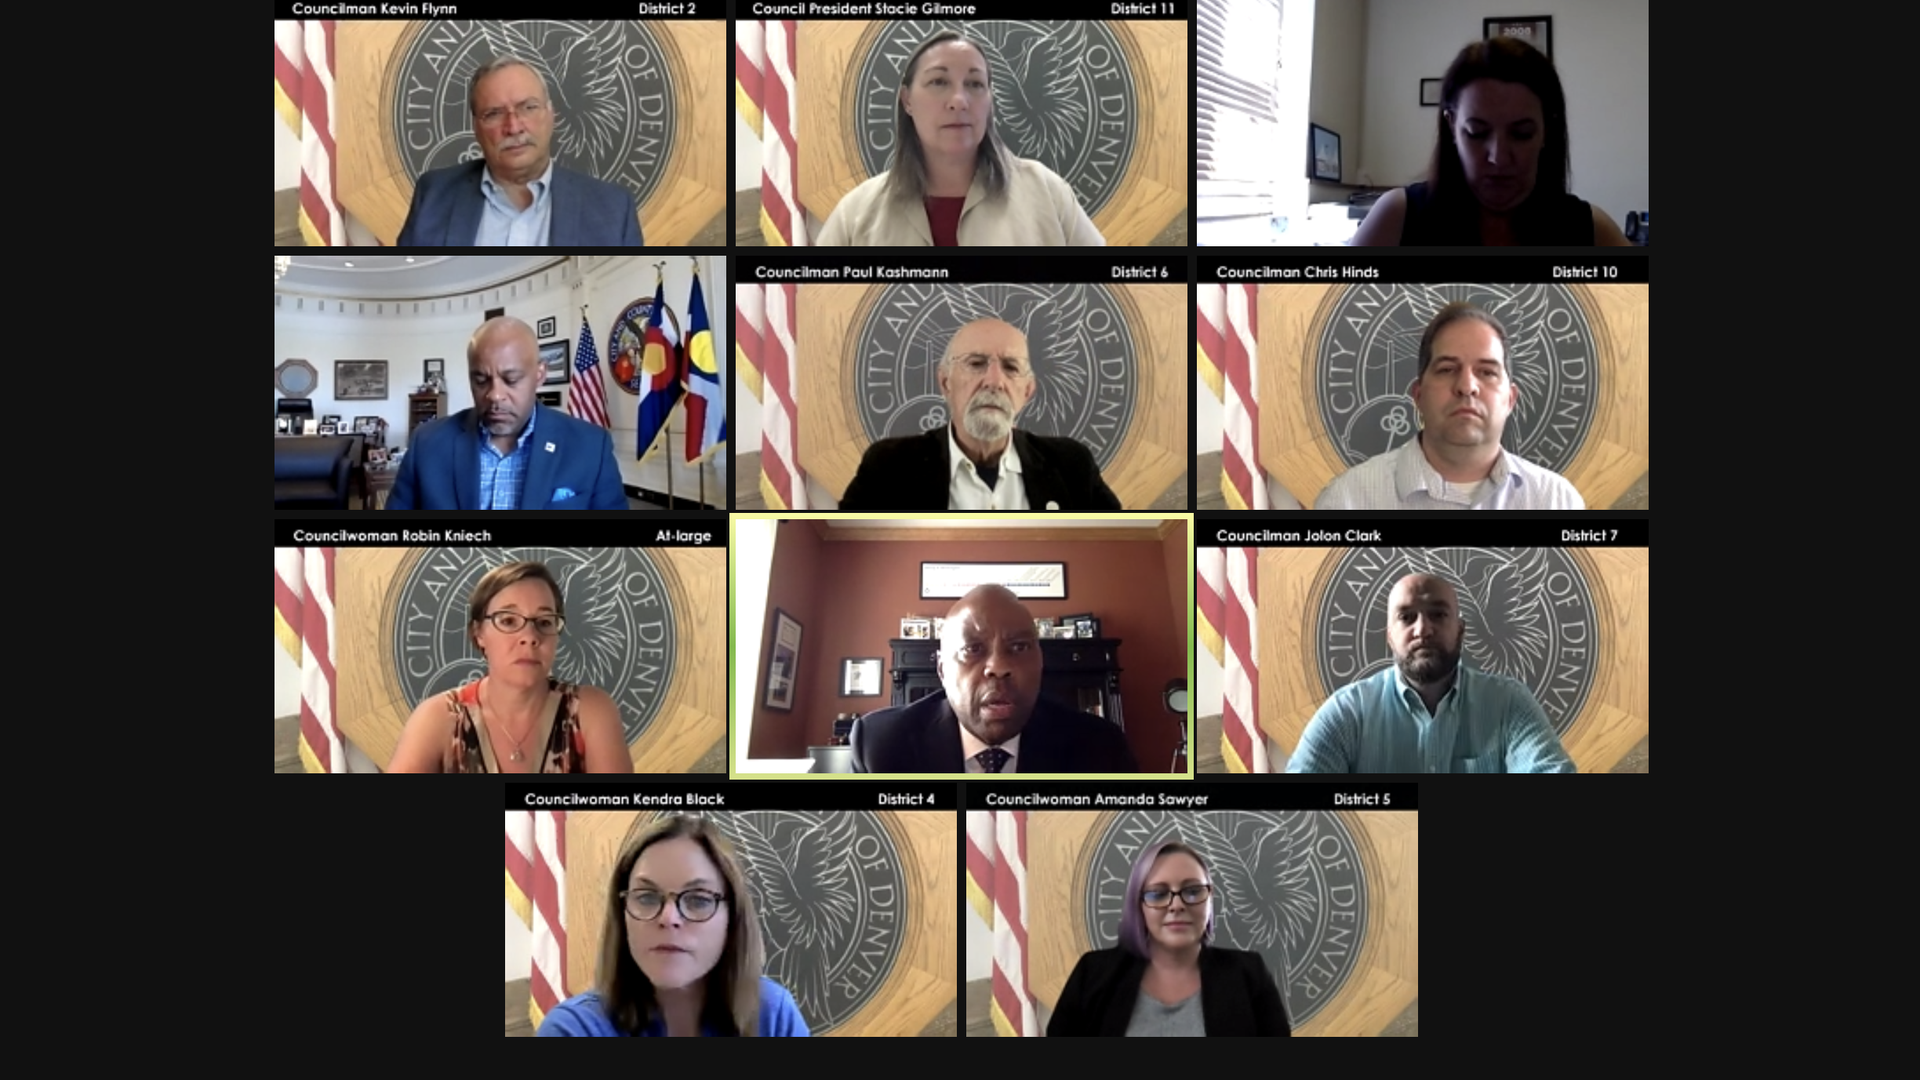 A Zoom screen of the council committee members